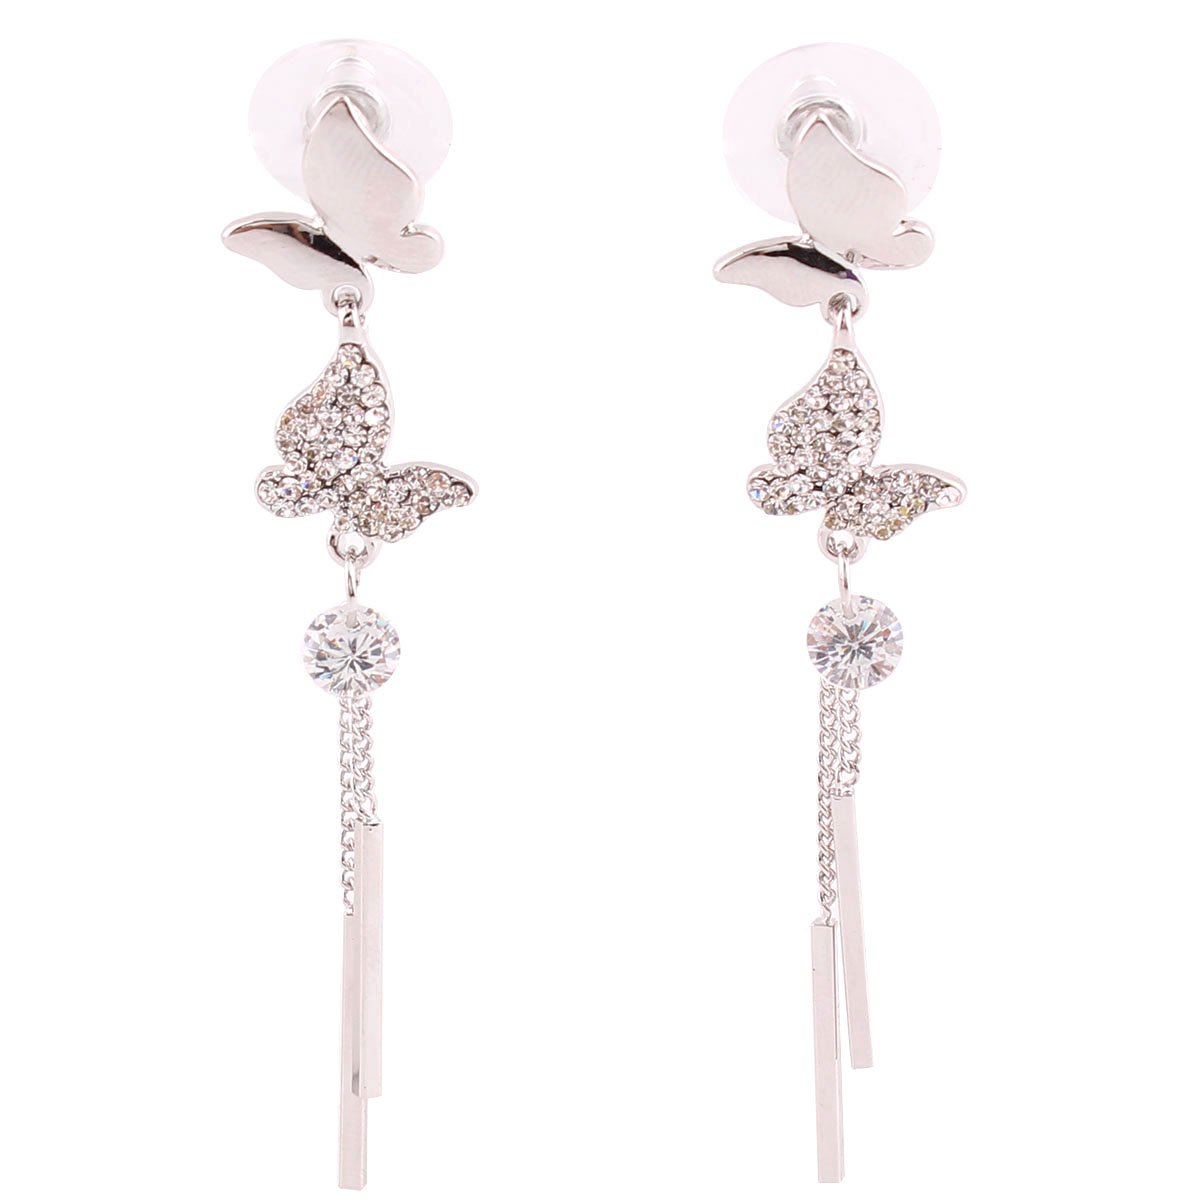 Grace Jun Luxury Bridal S925 Sterling Silver AAA CZ Long Drop Earrings With Butterfly Clip on Earrings (S925 Platinum plated)